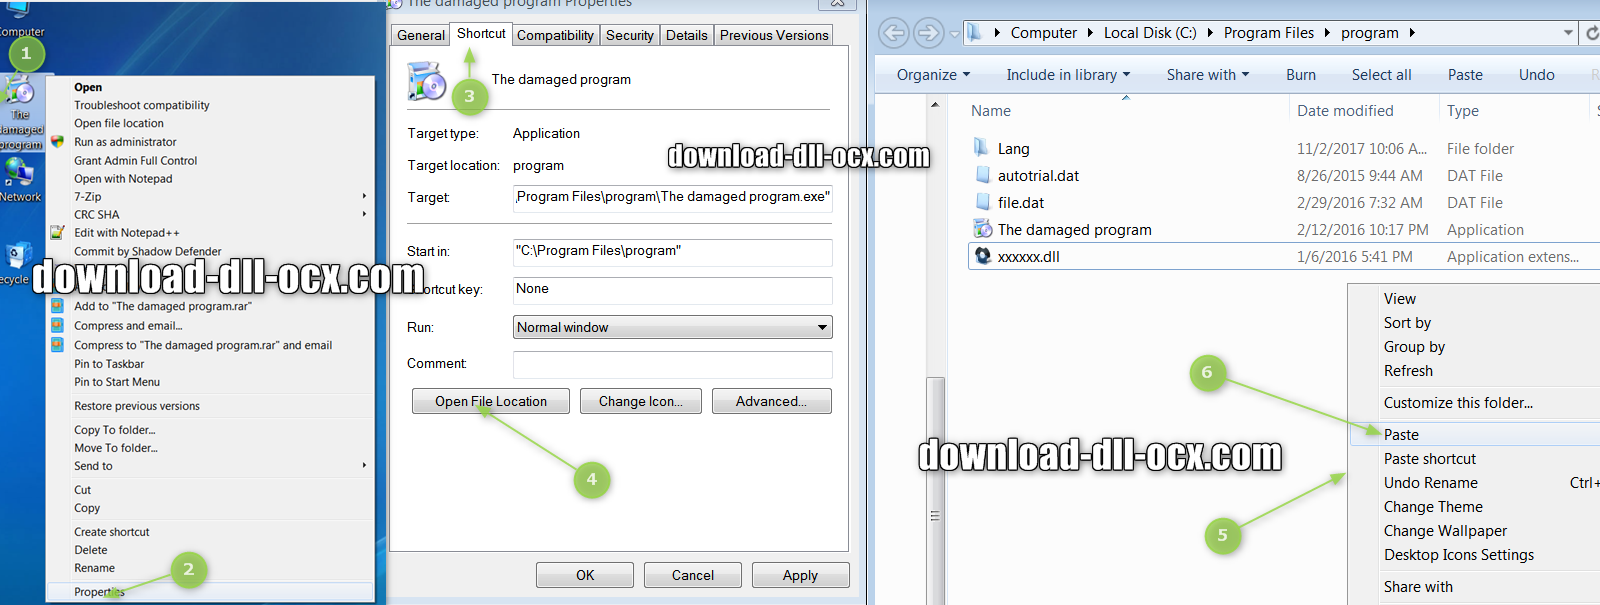 how to install Localedata_en.dll file? for fix missing